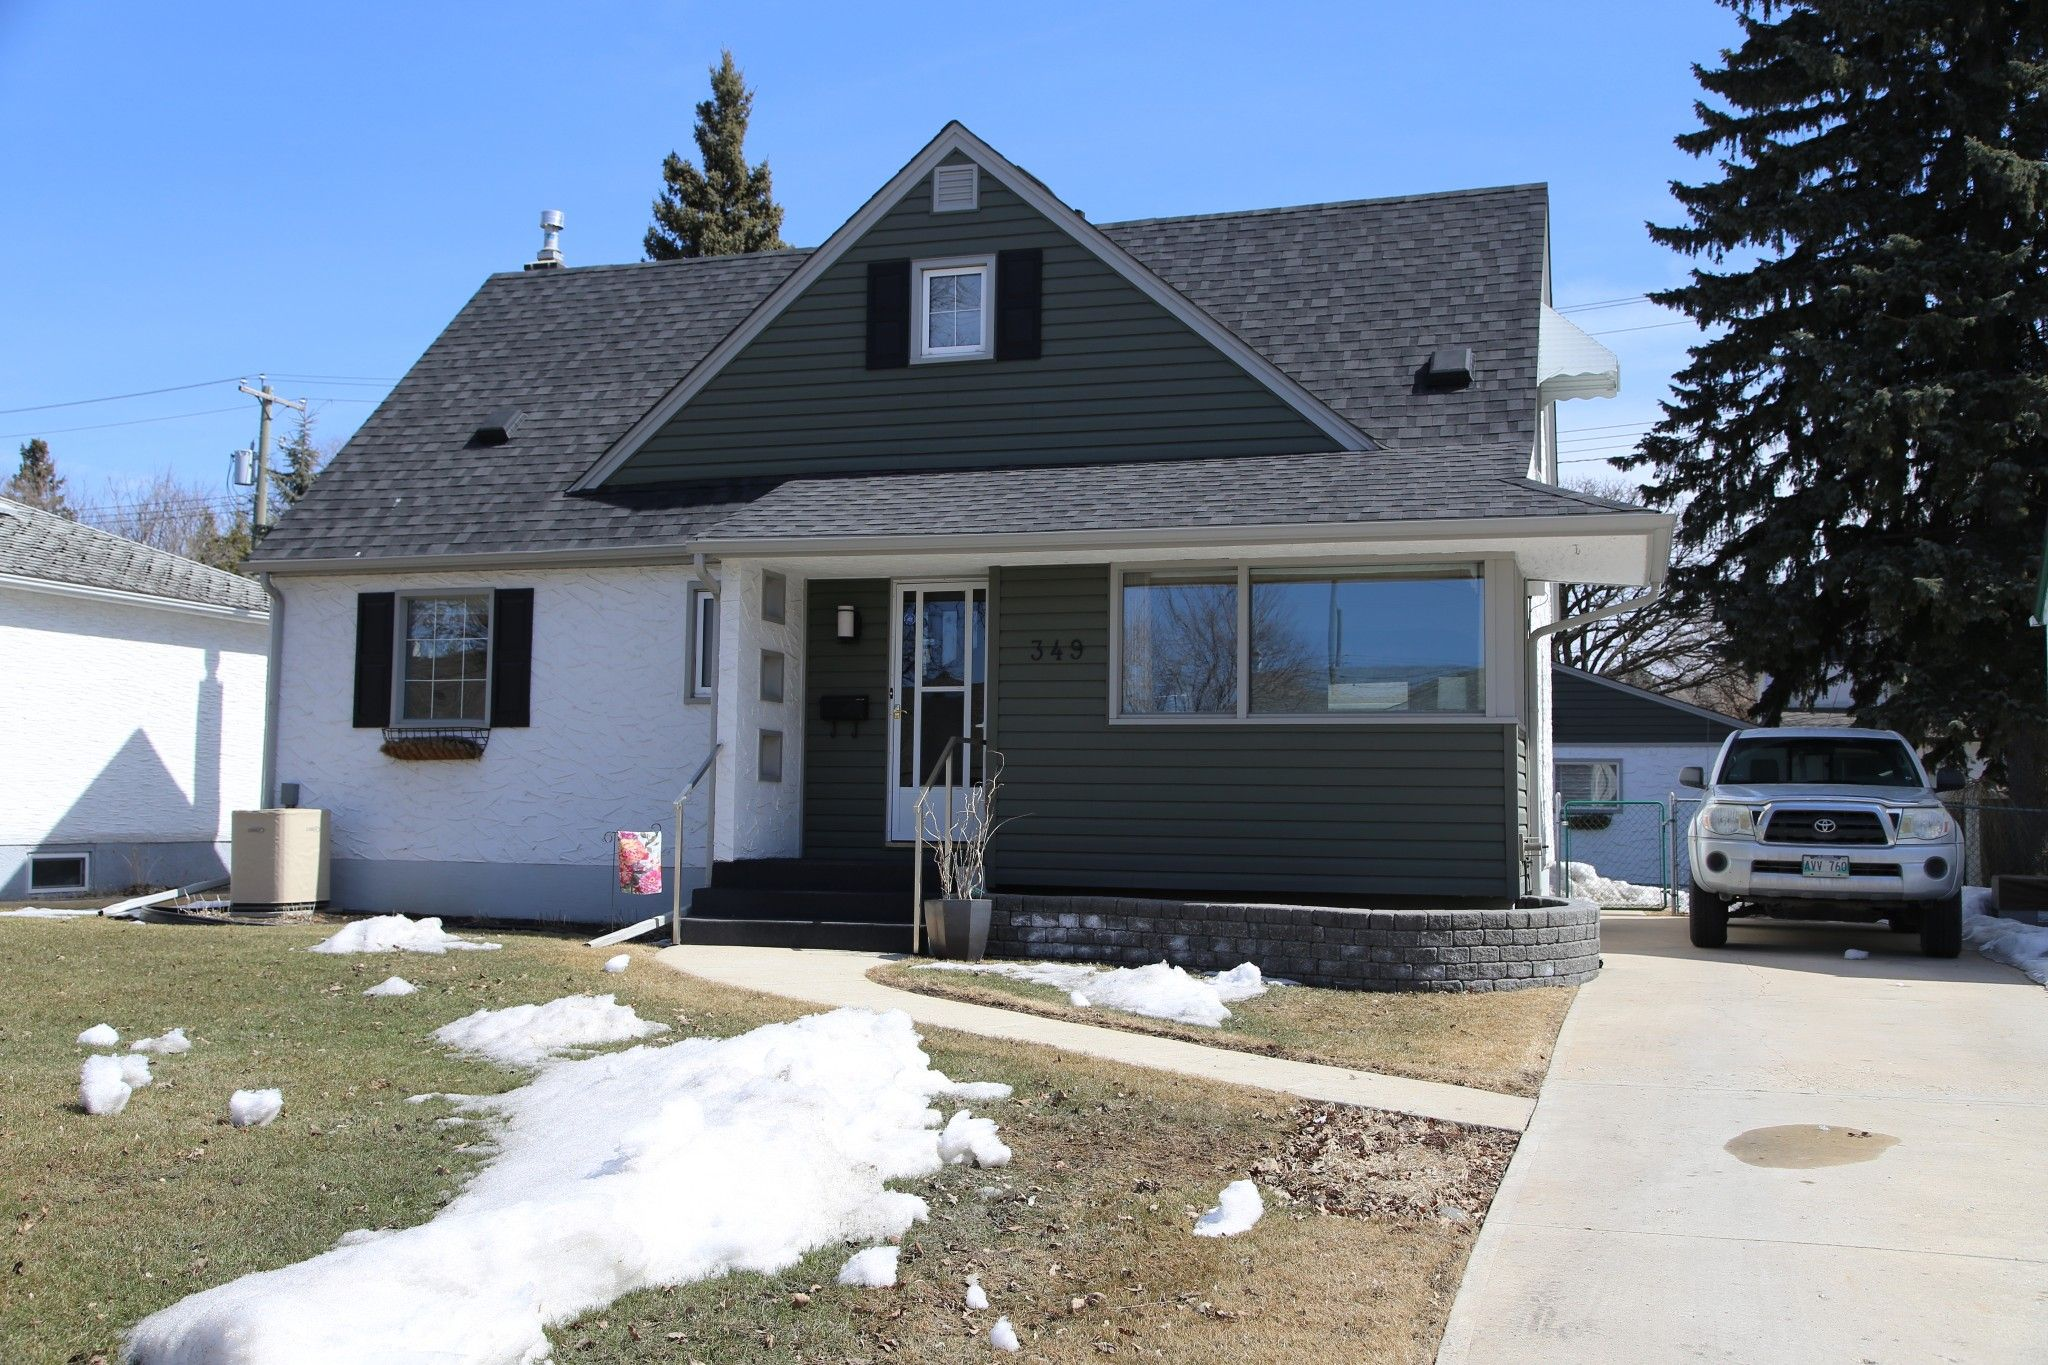 Photo 33: Photos: 349 Guildford Street in Winnipeg: St James Single Family Detached for sale (5E)  : MLS®# 1807654